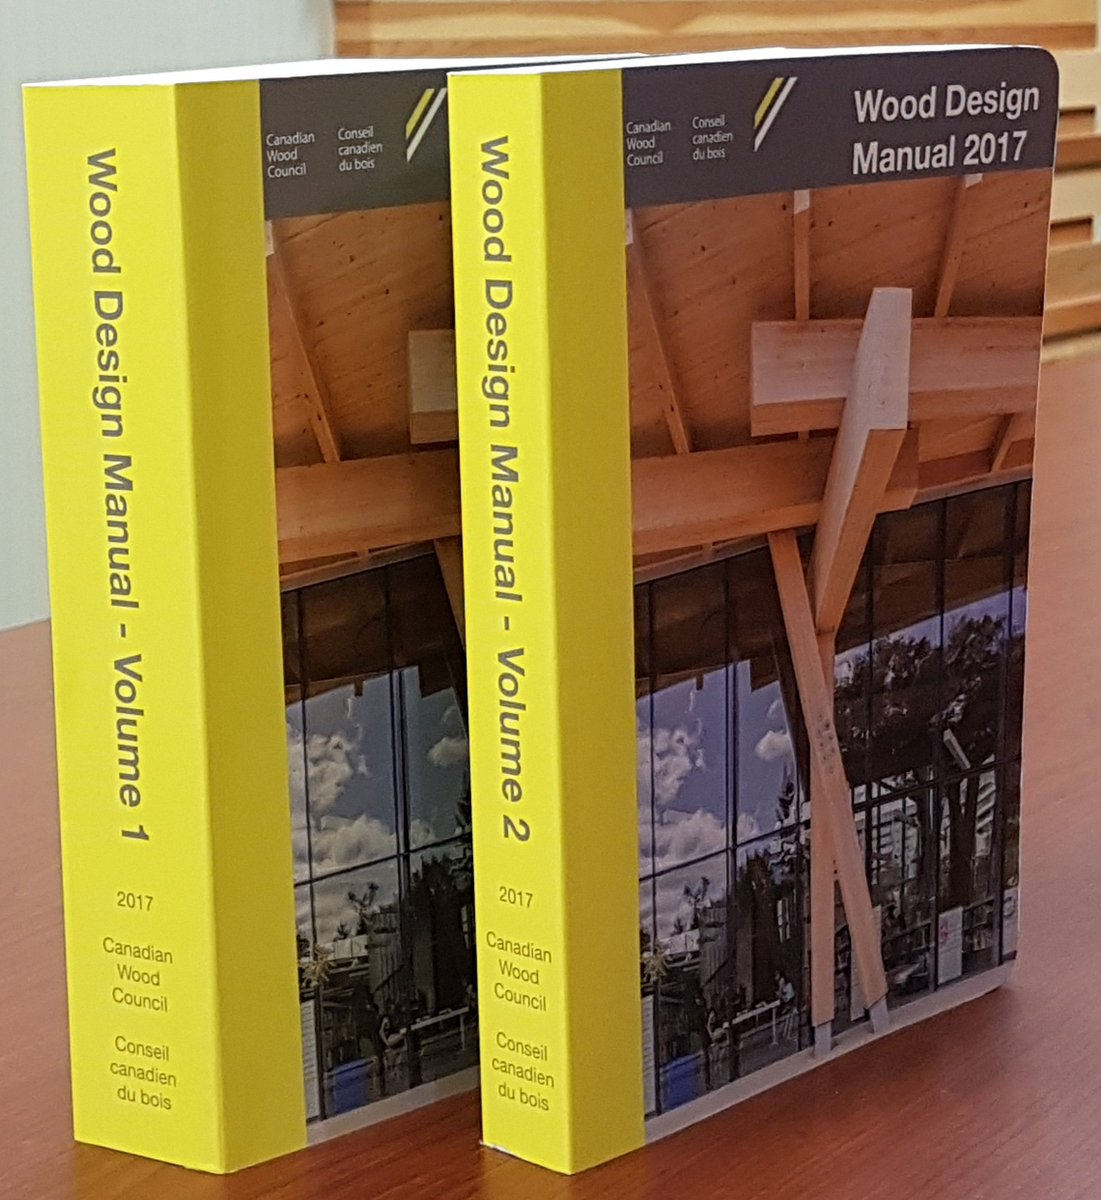 Canadian Wood Facts On Twitter The Wood Design Manual 2017 Is Now Available The Two Volume Publication Includes Csa O86 14 Updates 1 2 With Clt Design Guidance Purchase A Copy Today